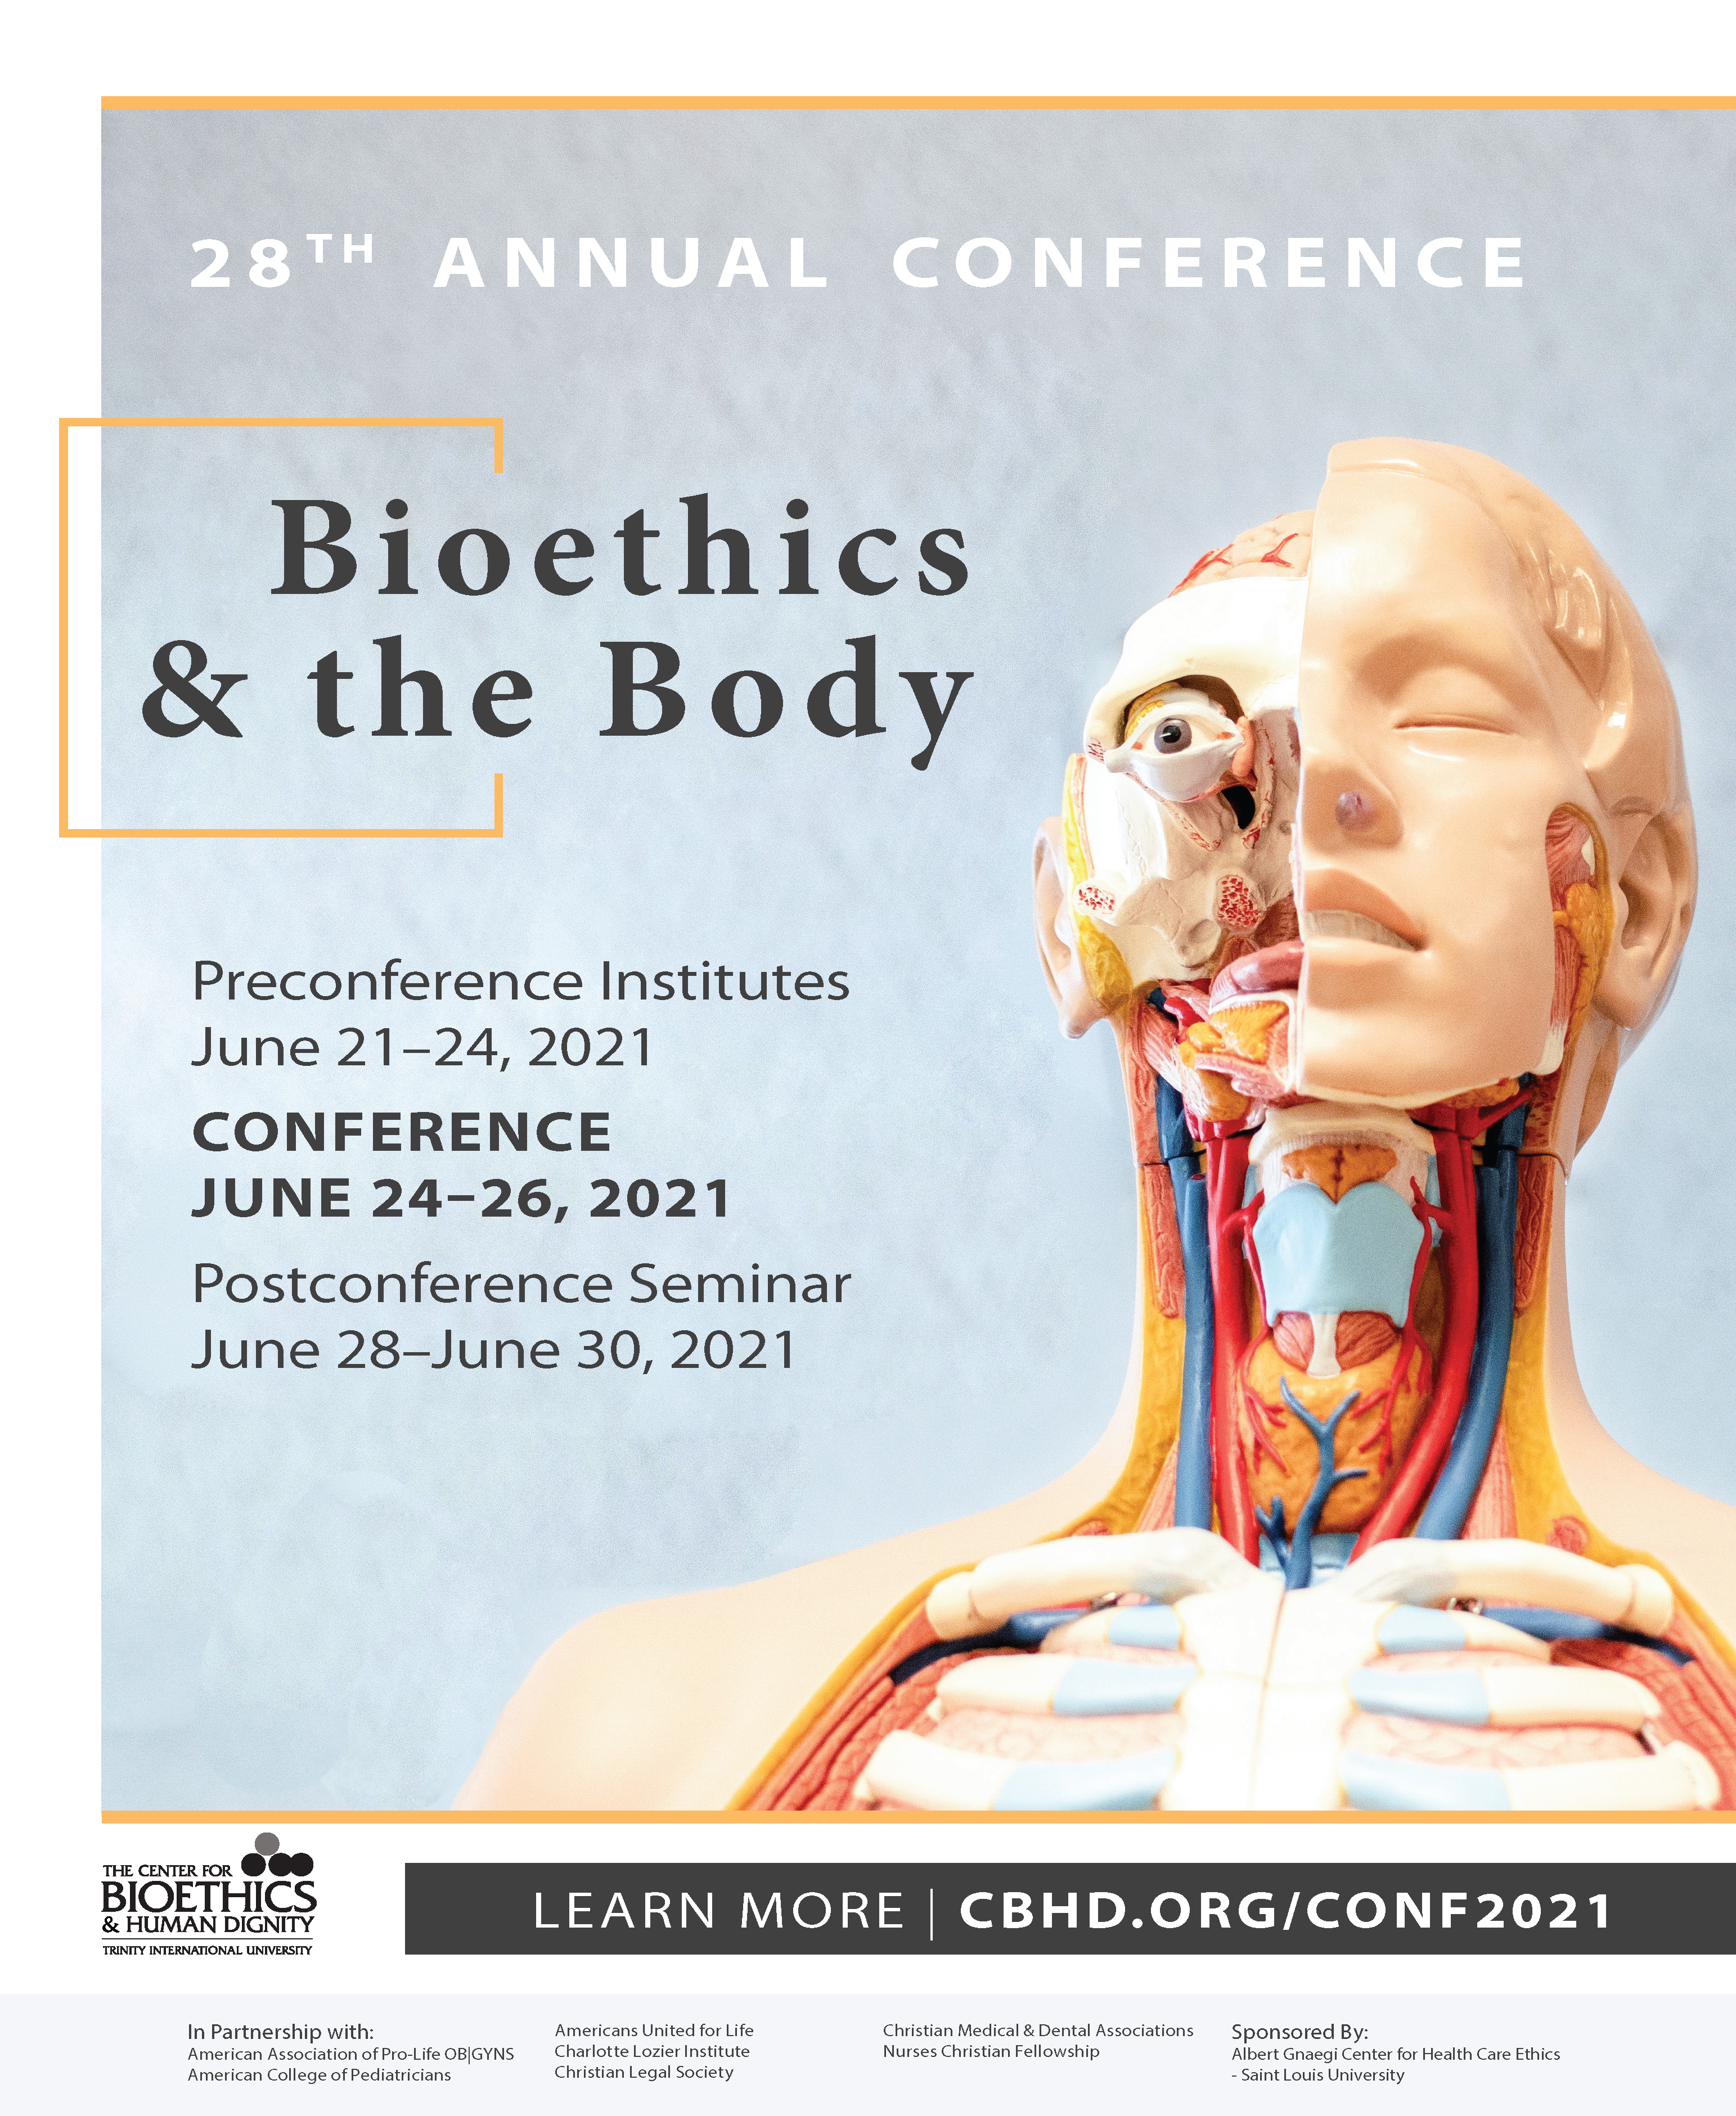 CBHD 24th Annual Summer Conference - Genetic and Reproductive Technologies